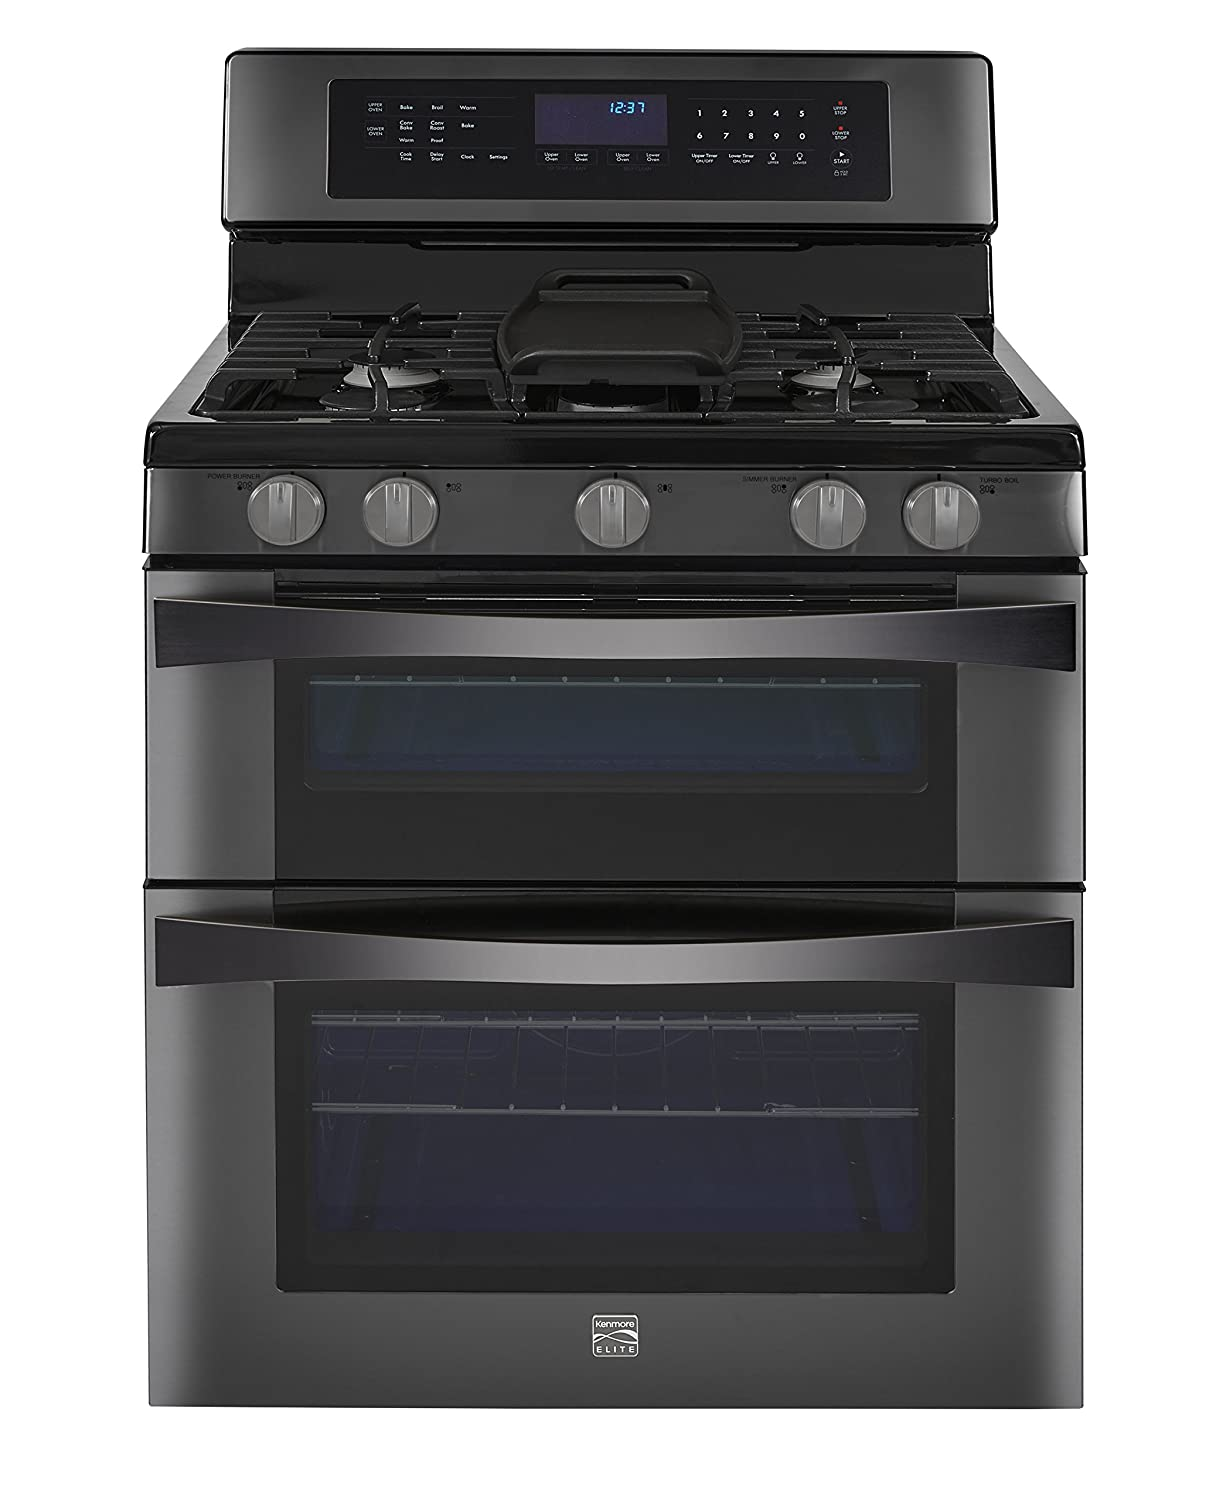 Amazon.com: Kenmore Elite 6.1 cu. ft. Double Oven Gas Range w/Convection  Cooking in Black Stainless, includes delivery and hookup - 02276037:  Appliances